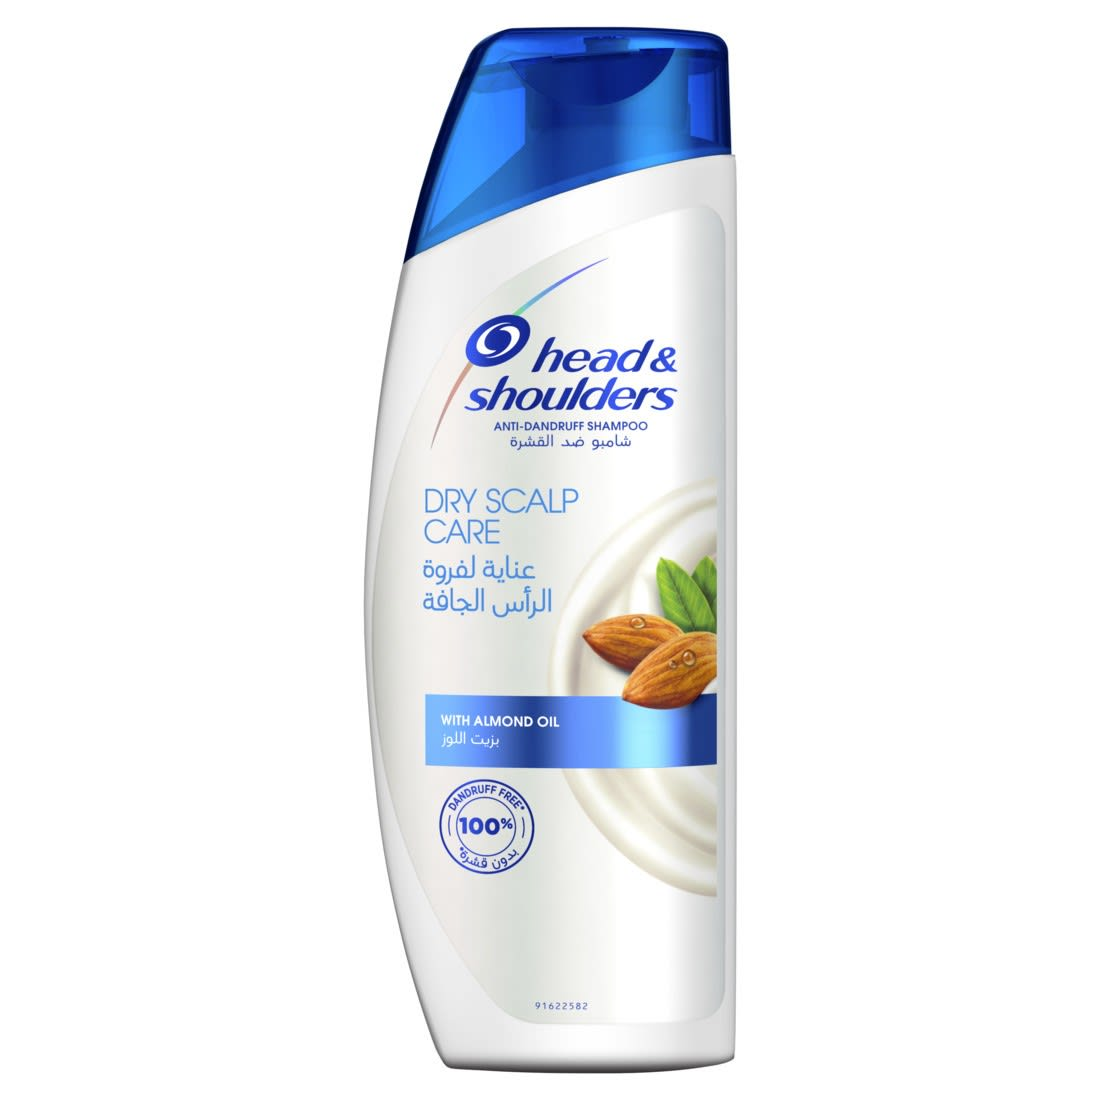 Dry Scalp Care Shampoo